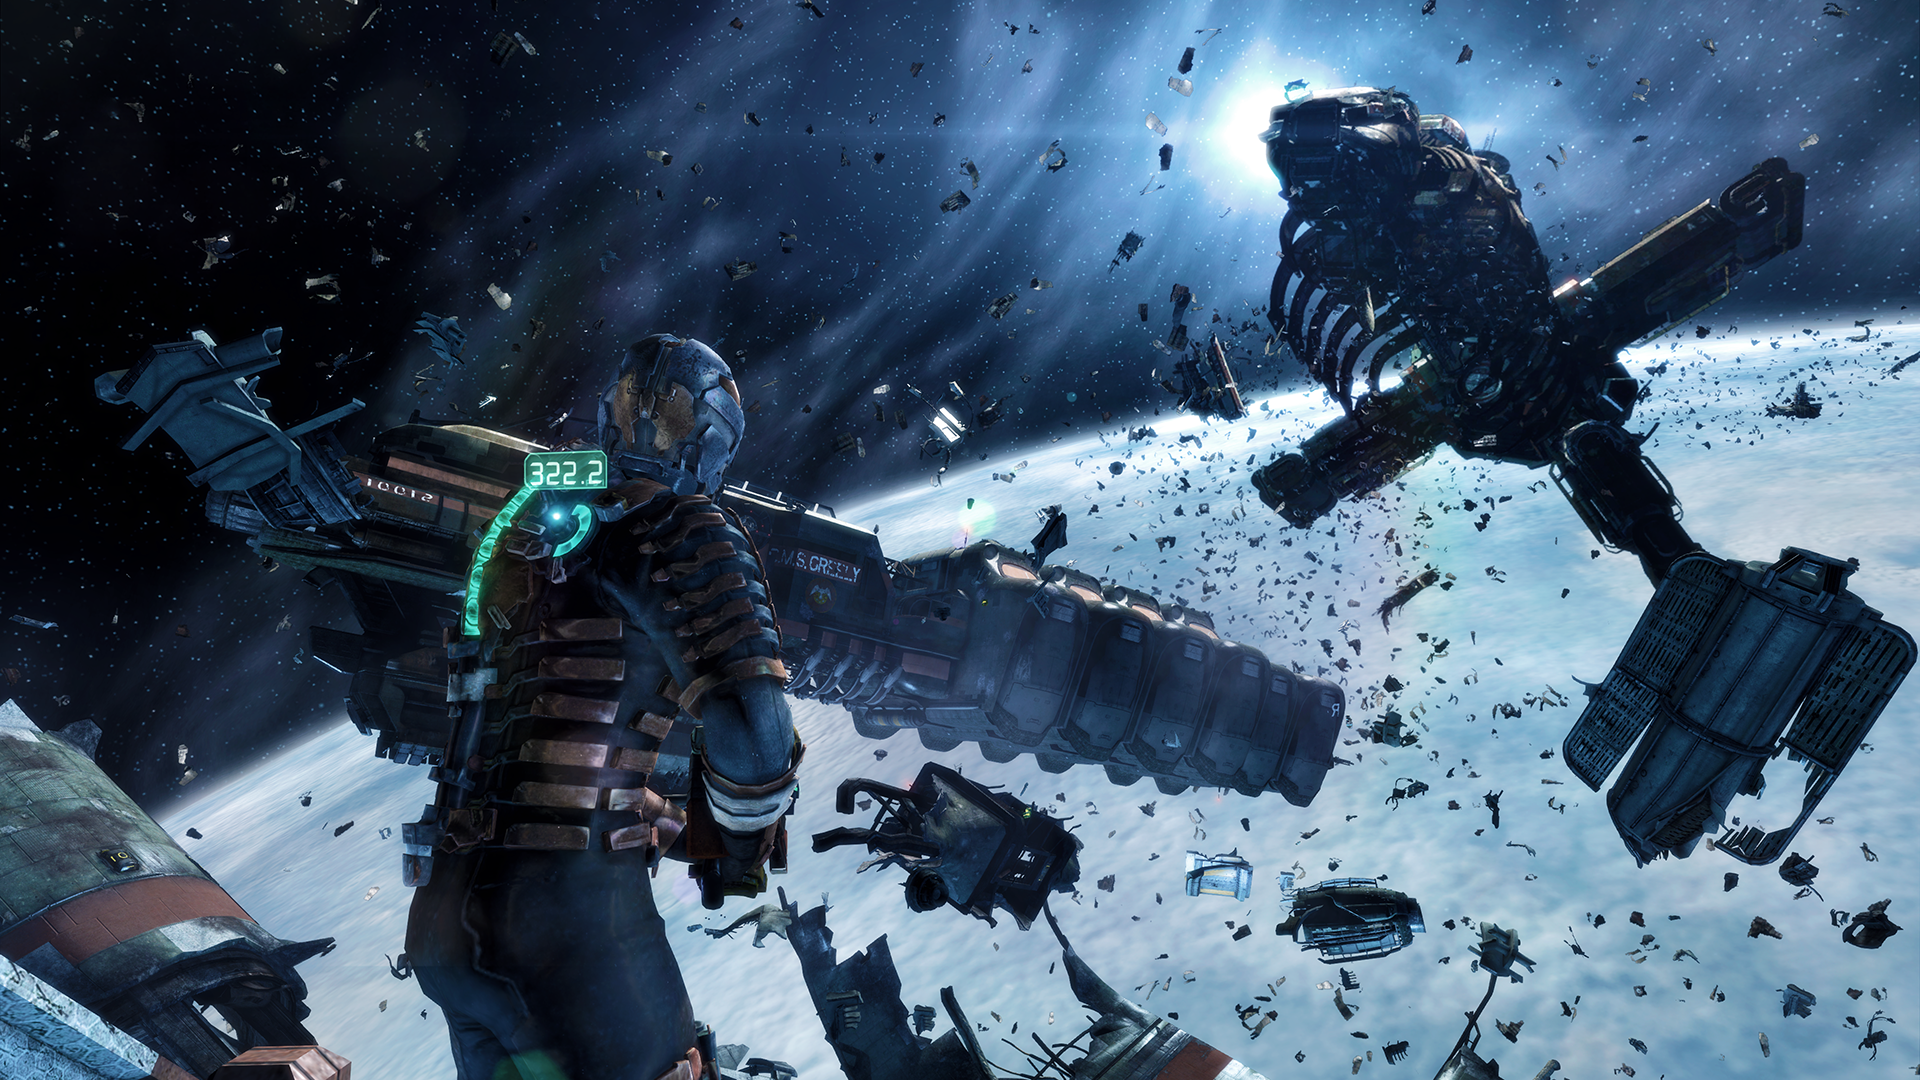 Dead Space 3 Wallpapers, Pictures, Images